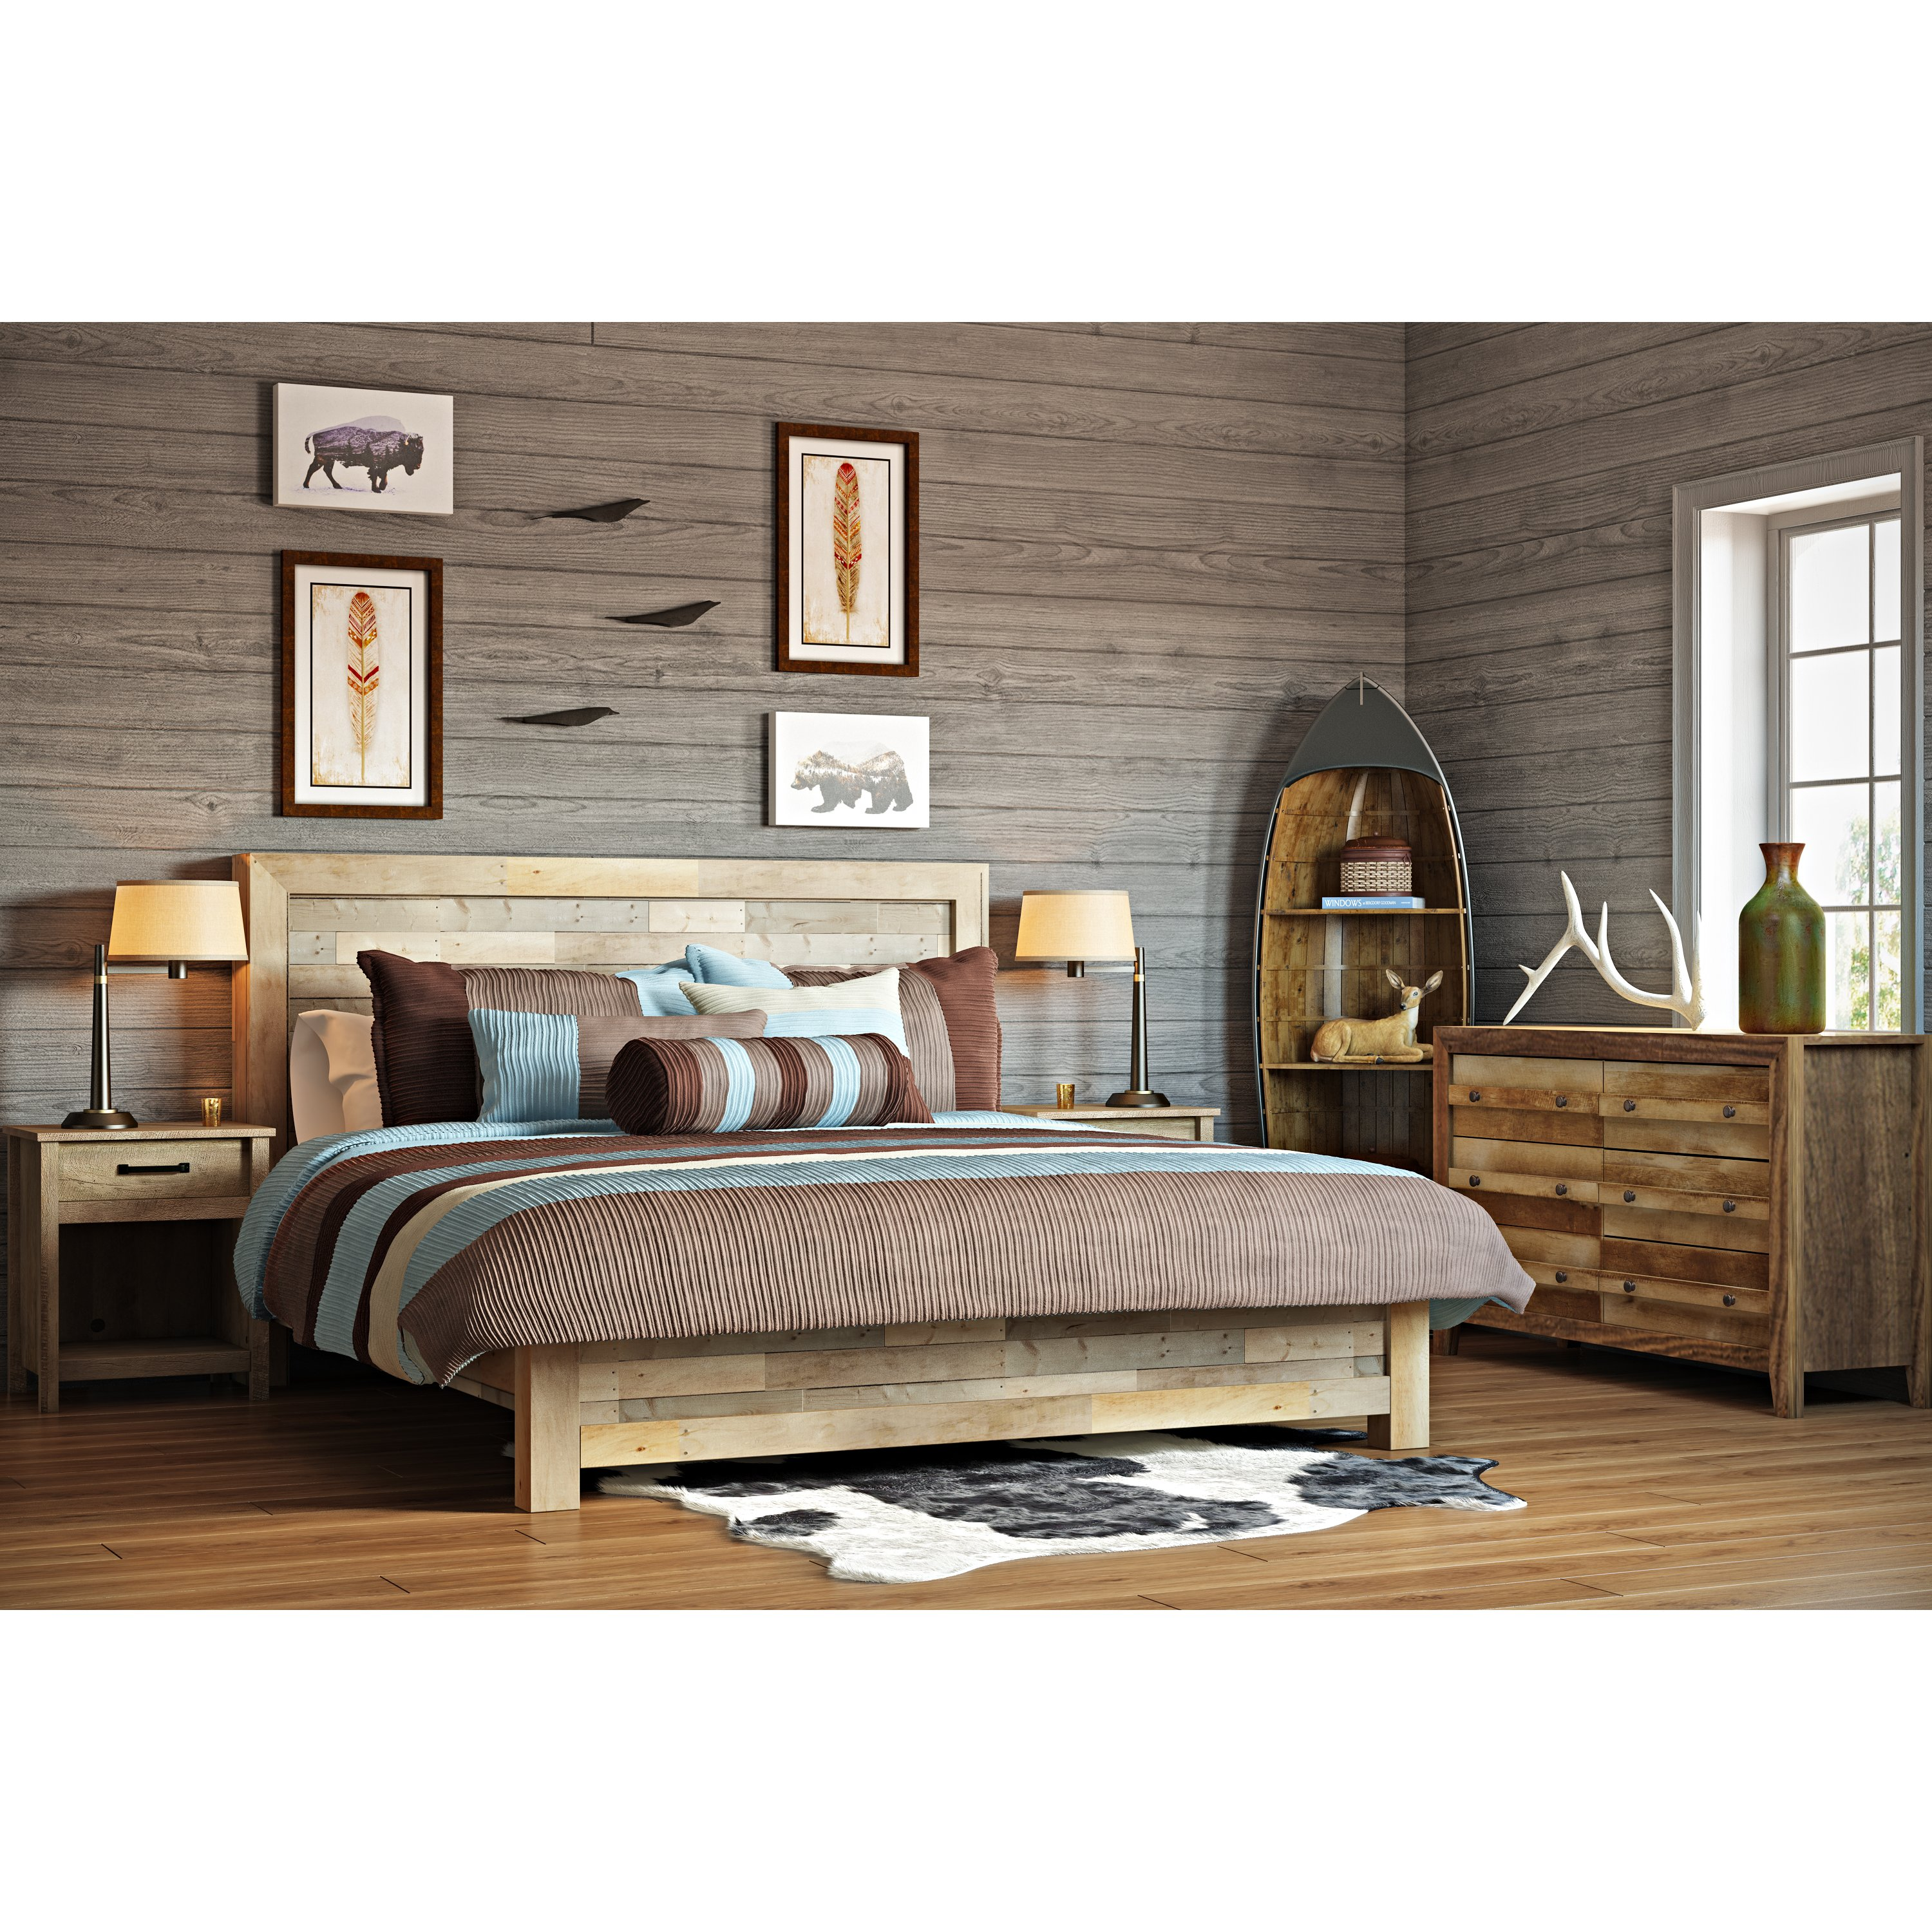 Our editors independently research, test, and recommend the best products; Best Coolest El Dorado Furniture Bedroom Sets Atmosphere ...